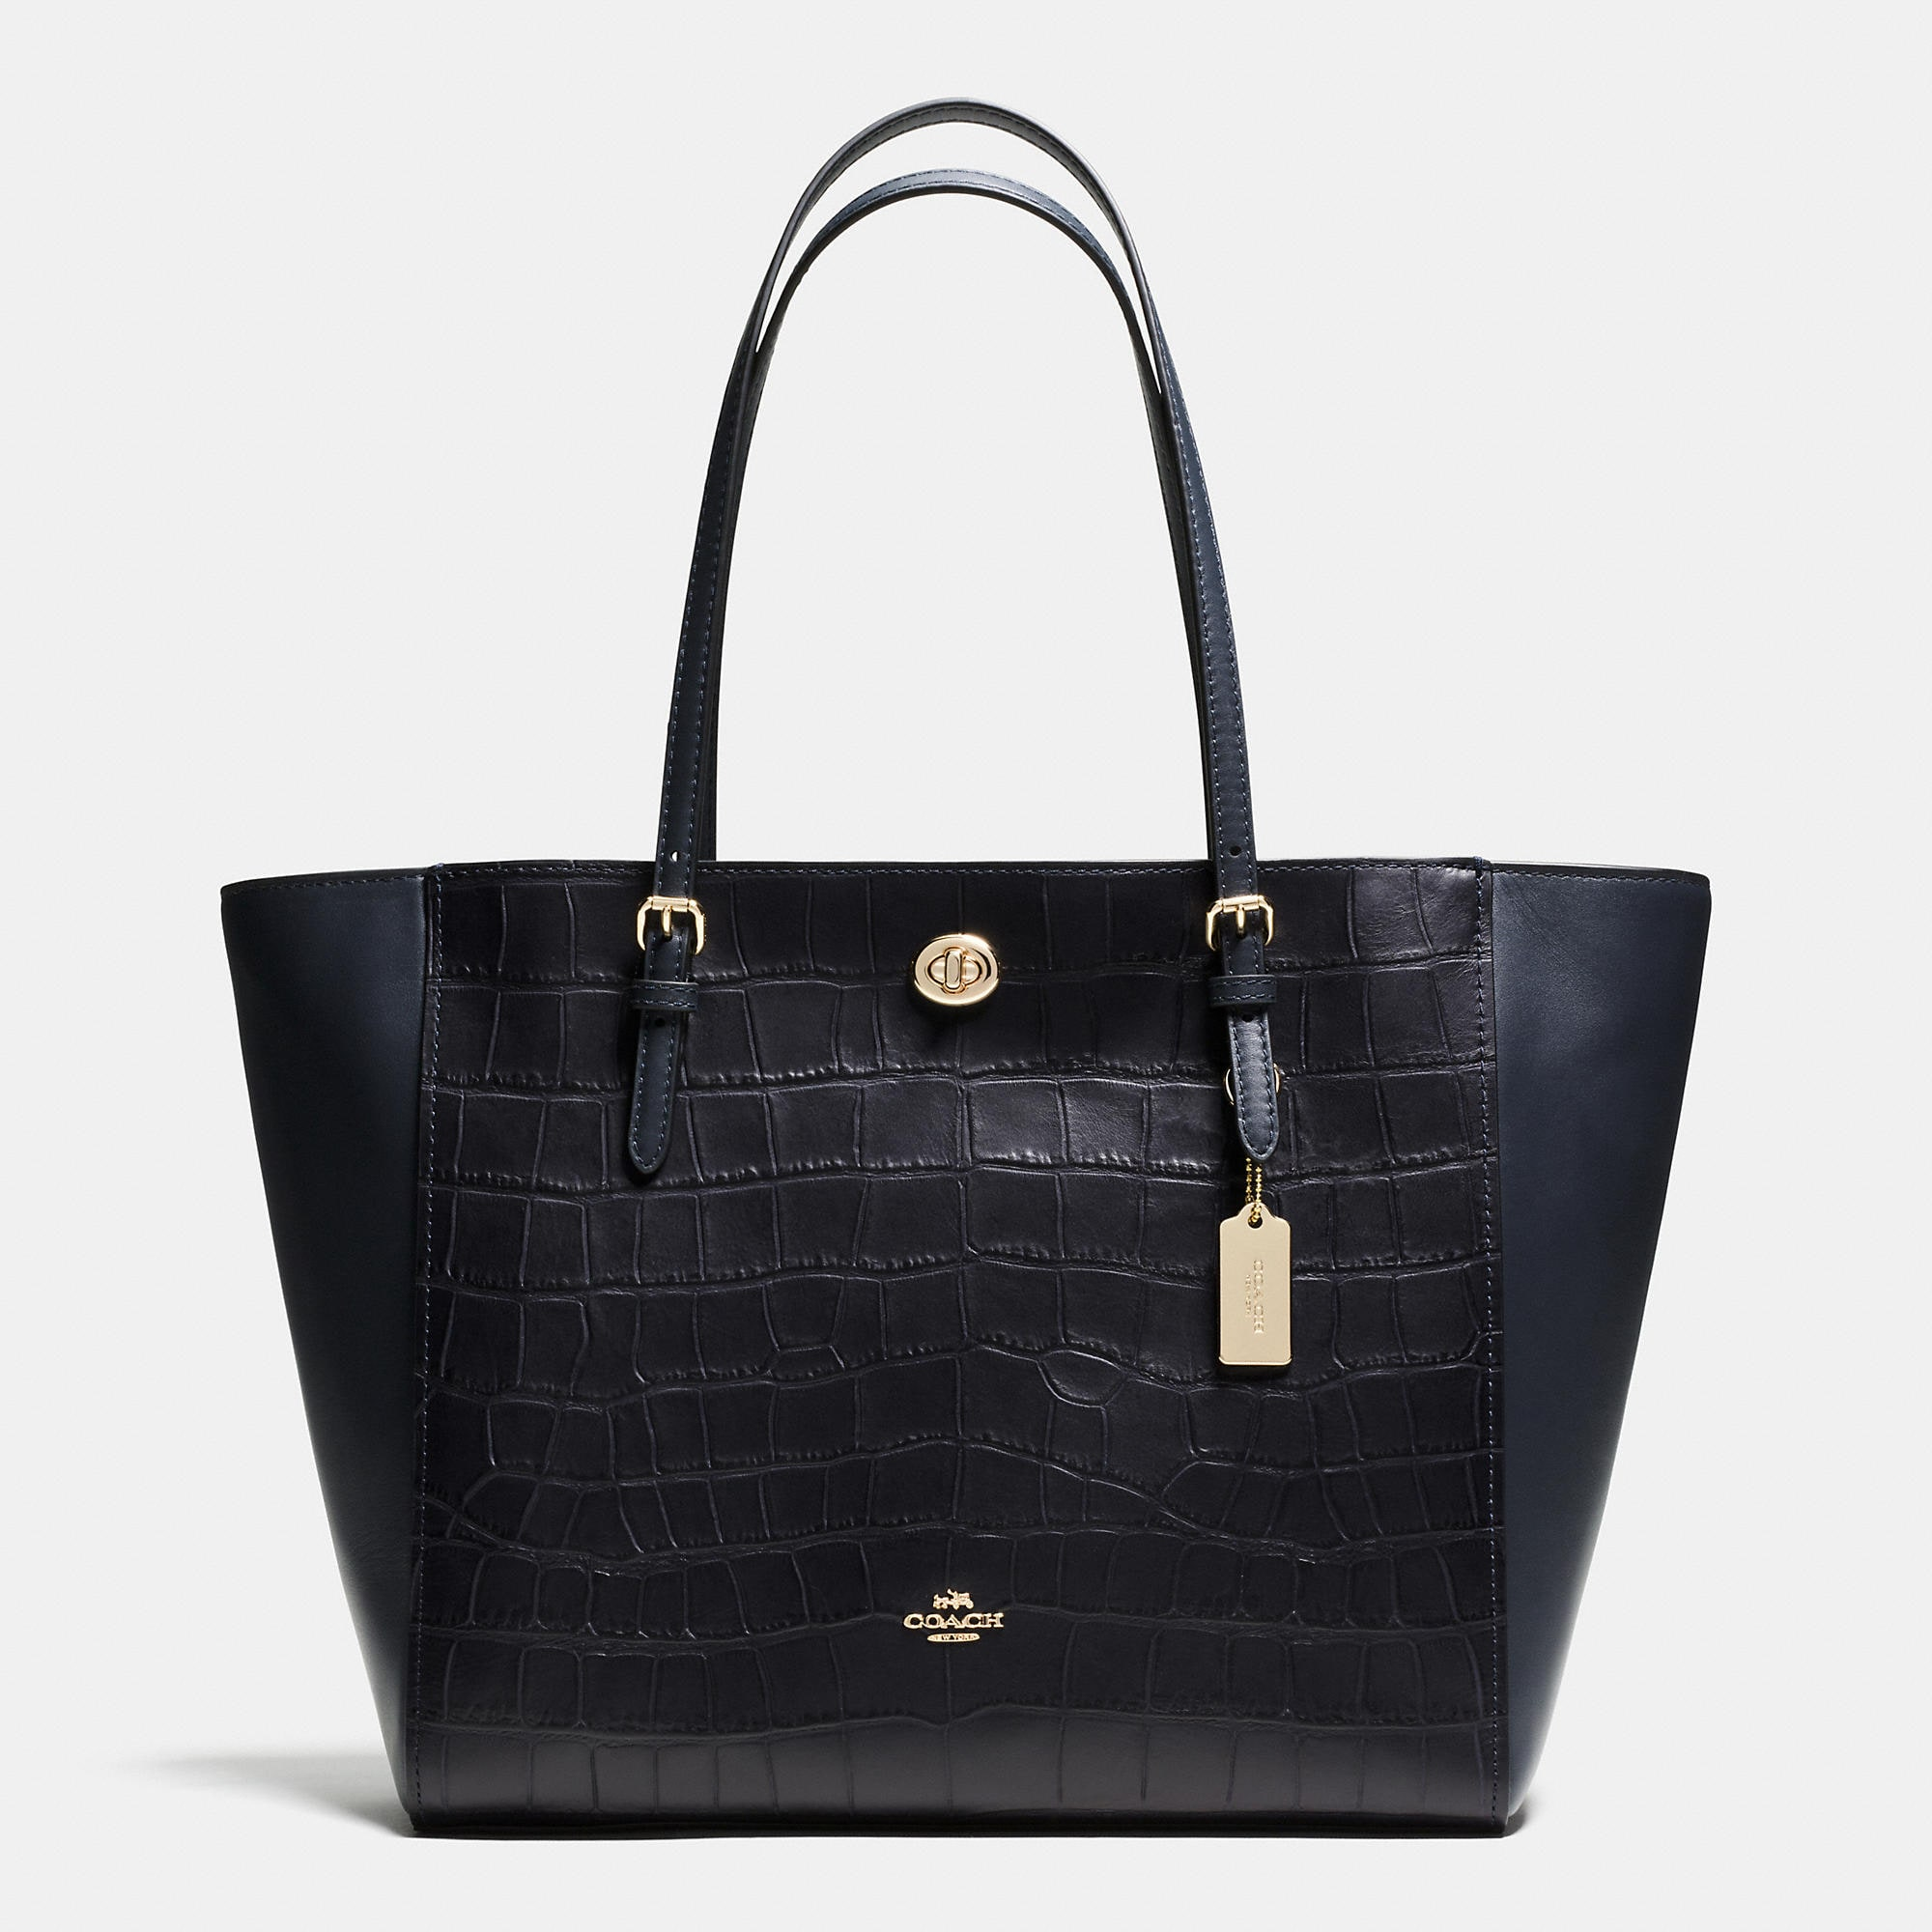 Coach Turnlock Tote In Croc Embossed Leather